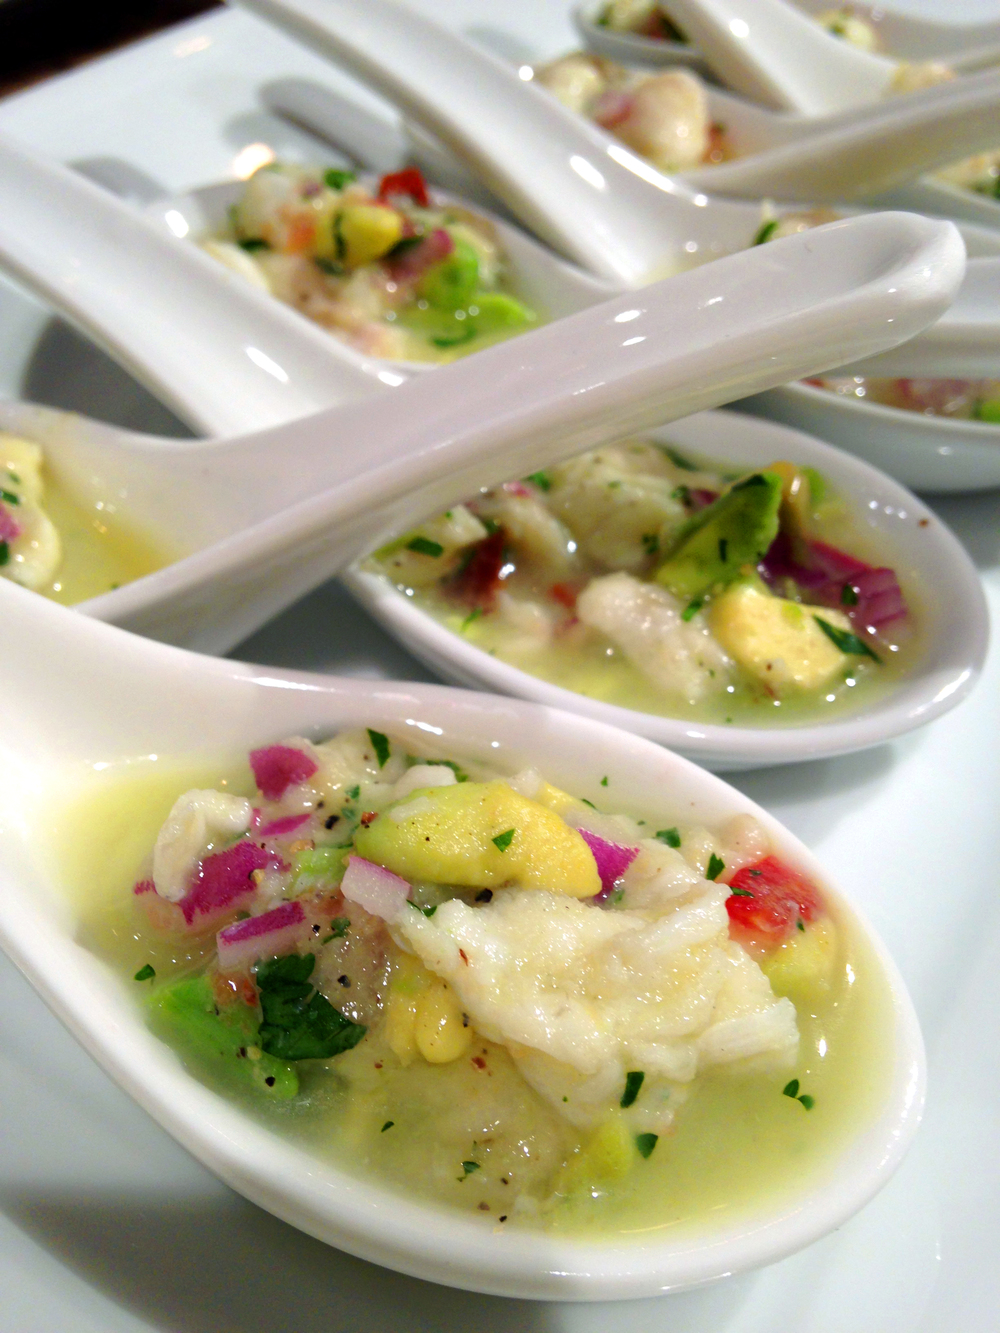 The fluke ceviche was prepared by Lucrecia, a student from Panama